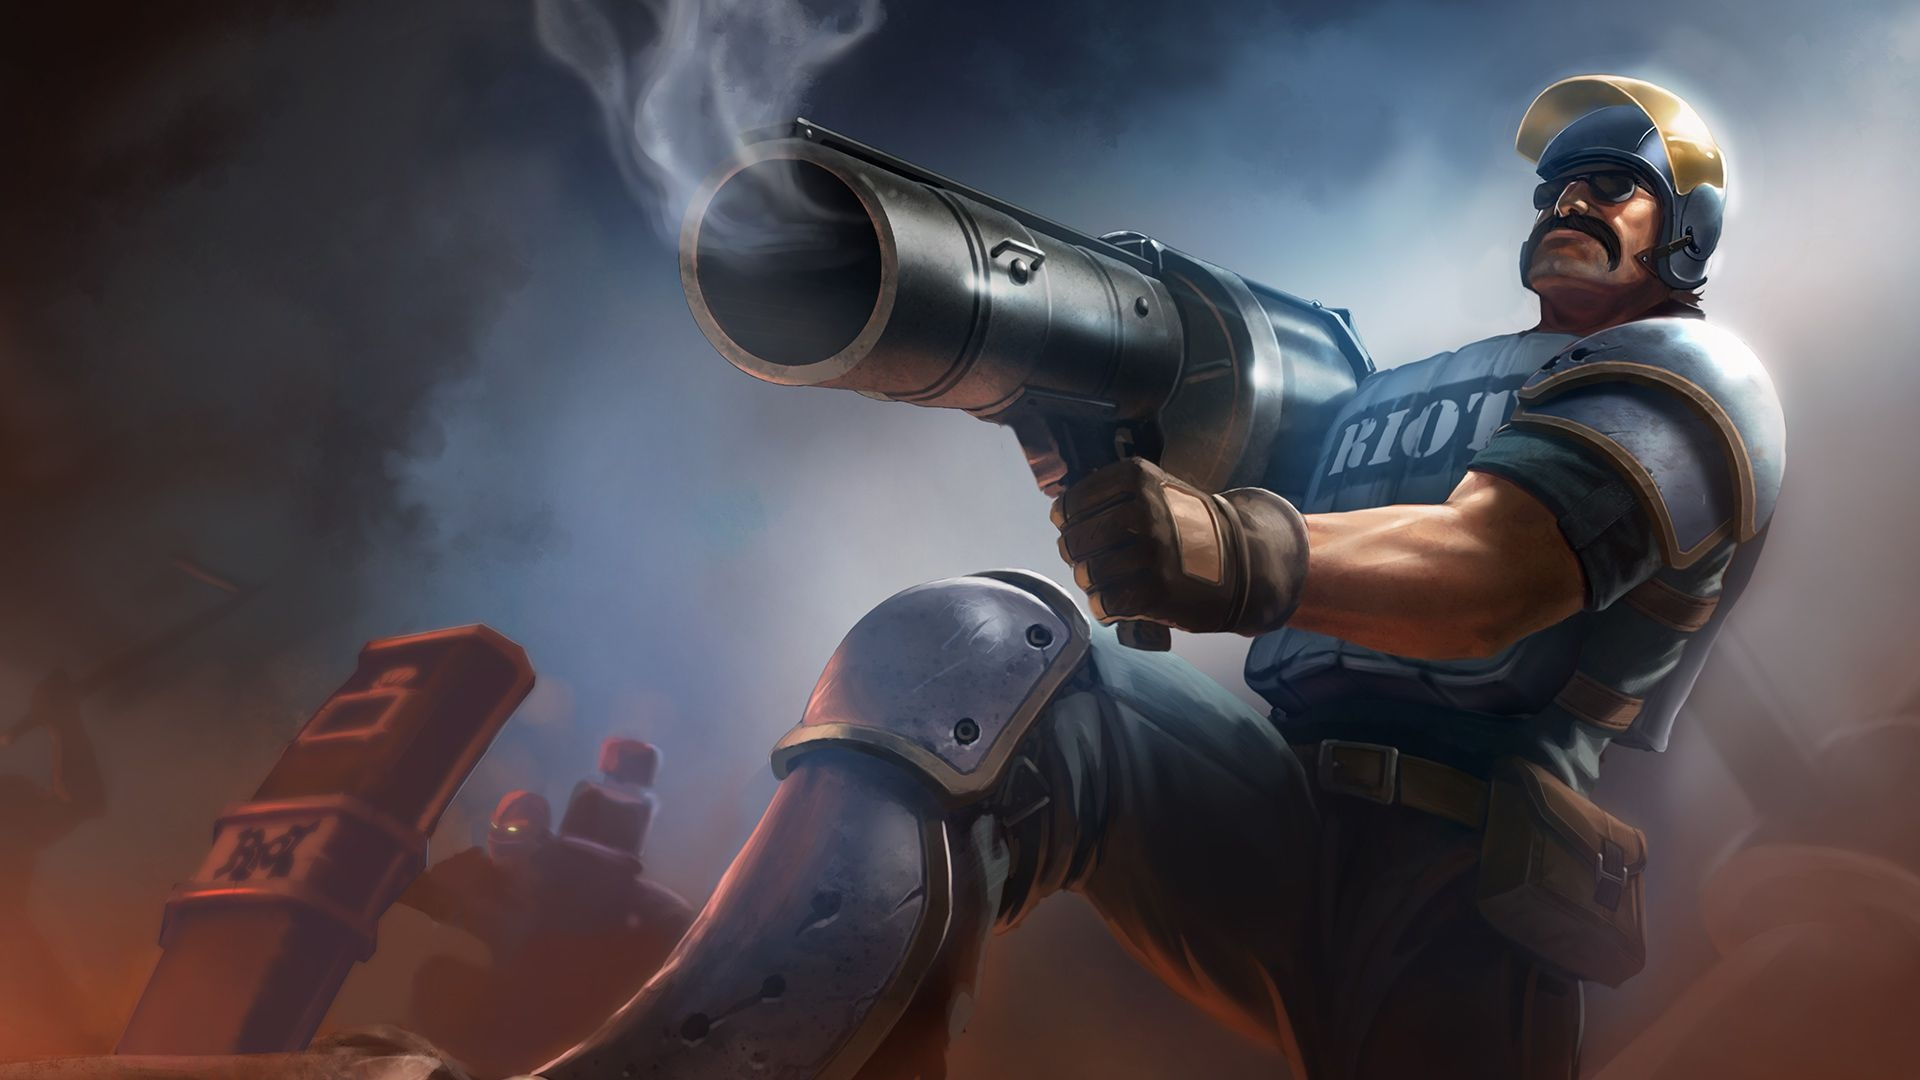 Counter-Strike + Overwatch: что такое Project A от Riot Games?